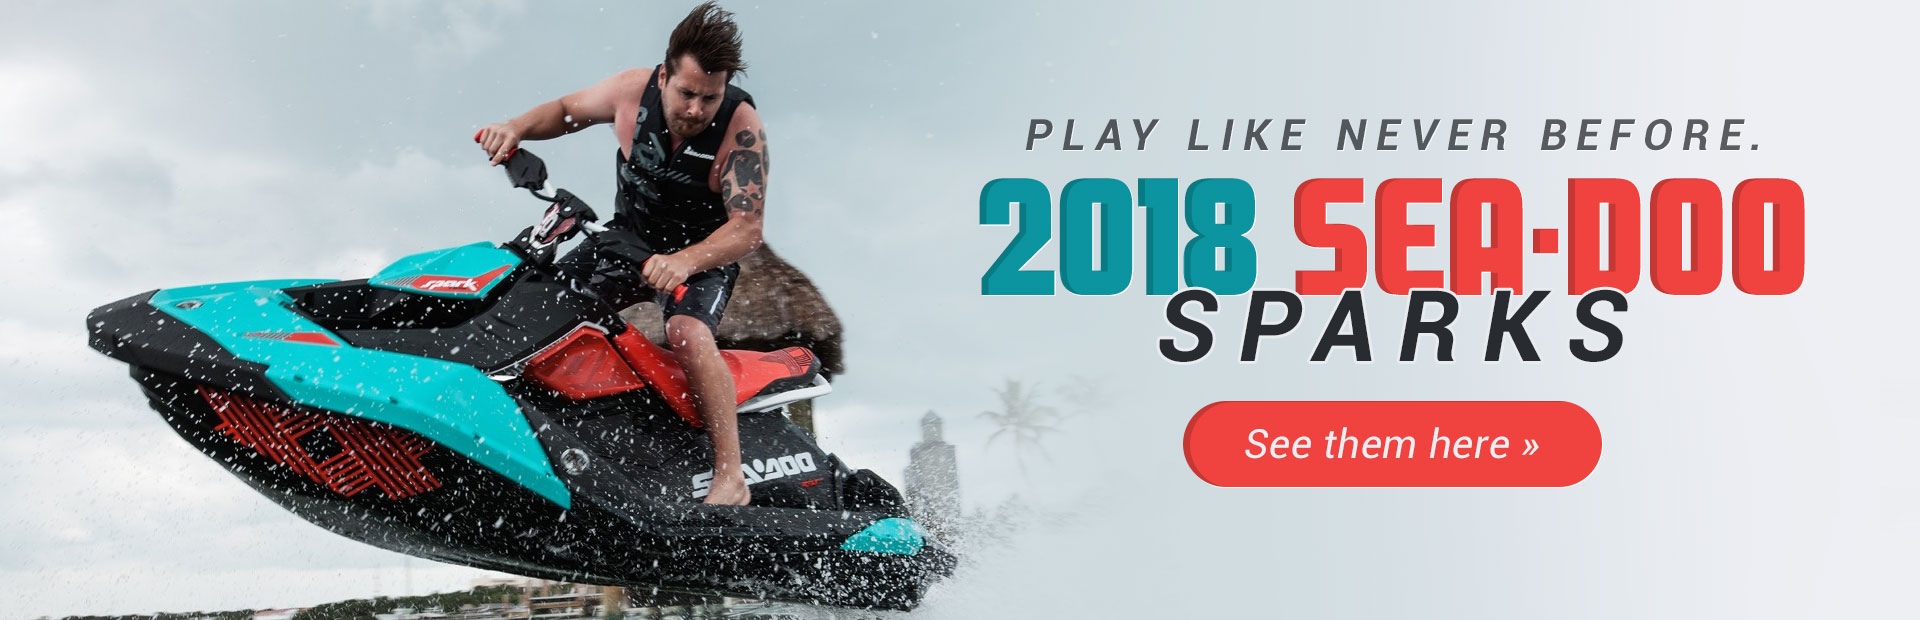 Click here to view the 2018 Sea-Doo Spark models.